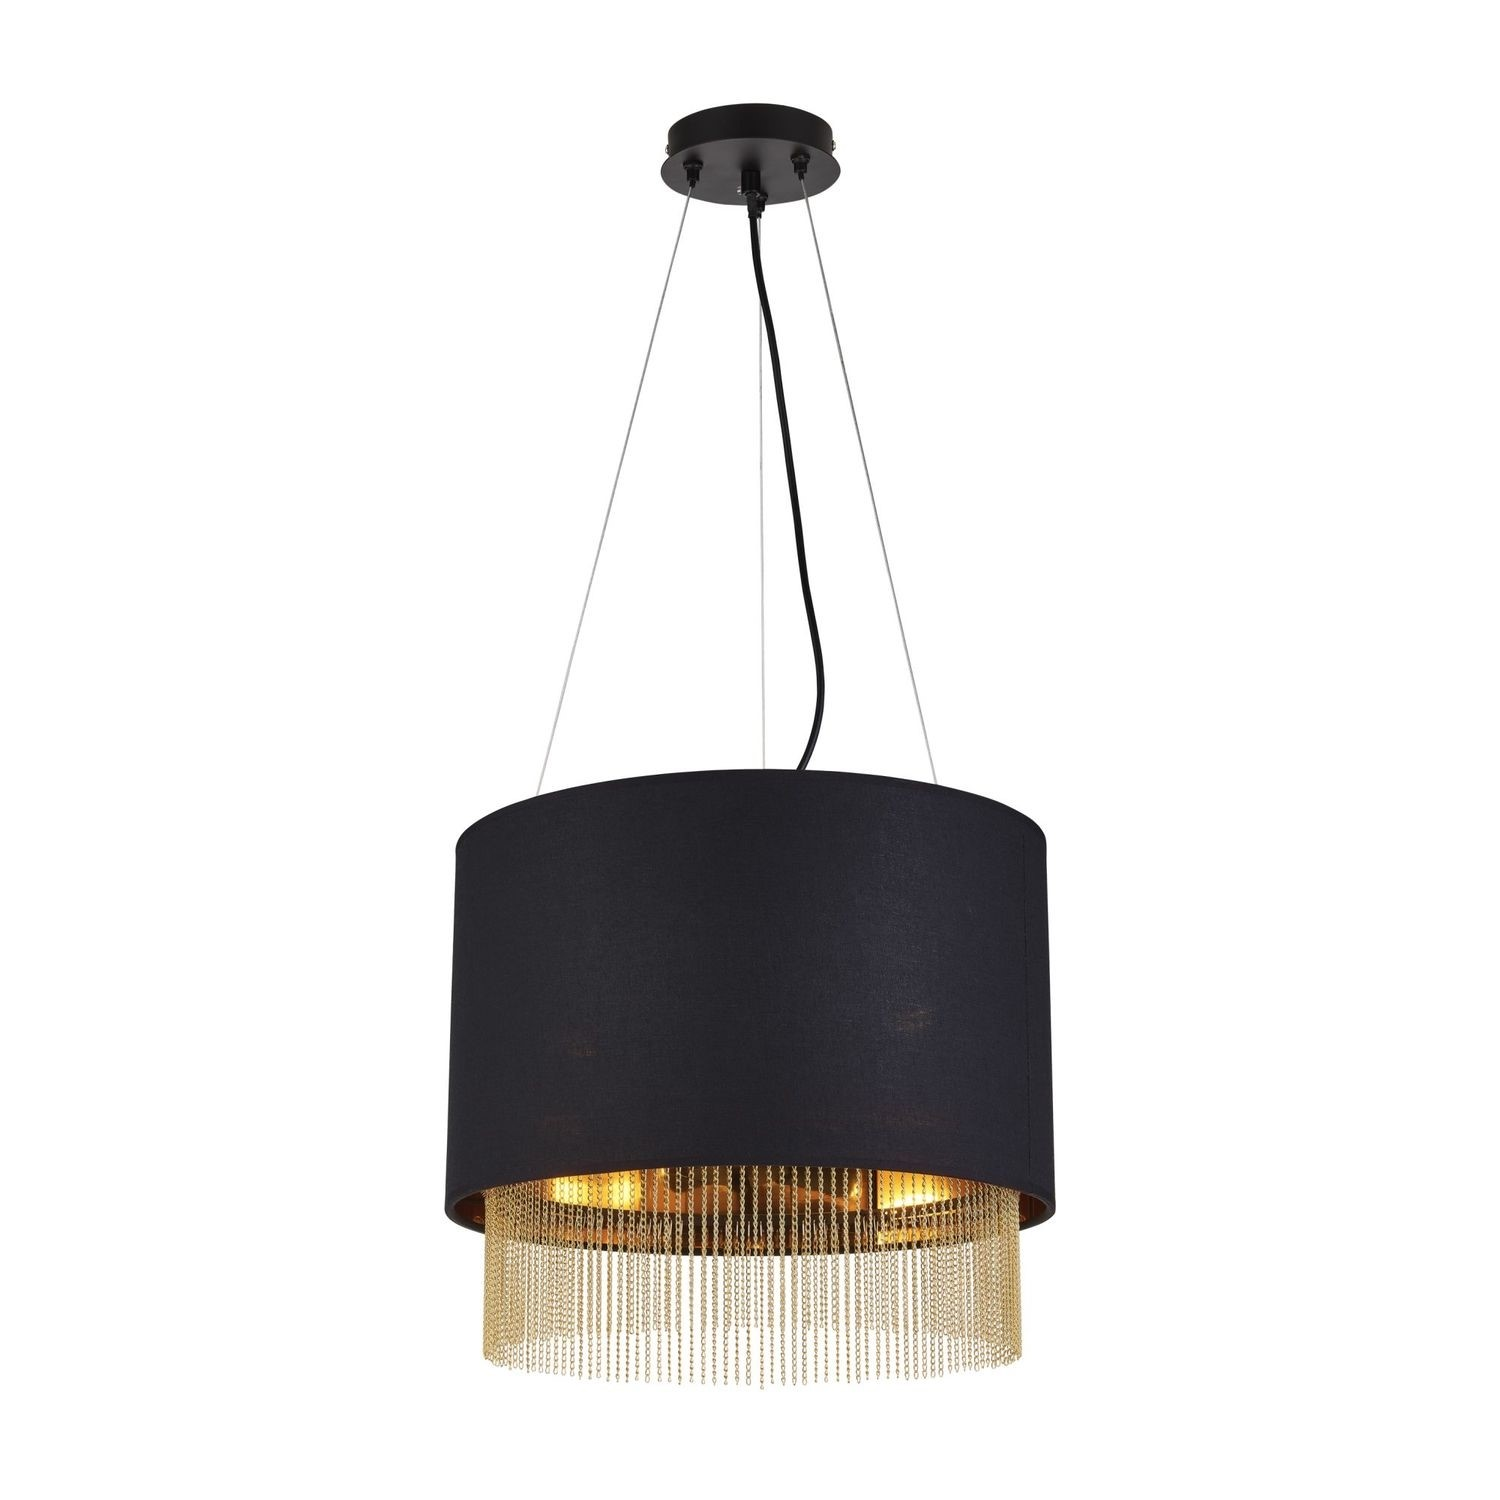 Black Pendant Light With Gold Chains Searchlight Furniture123